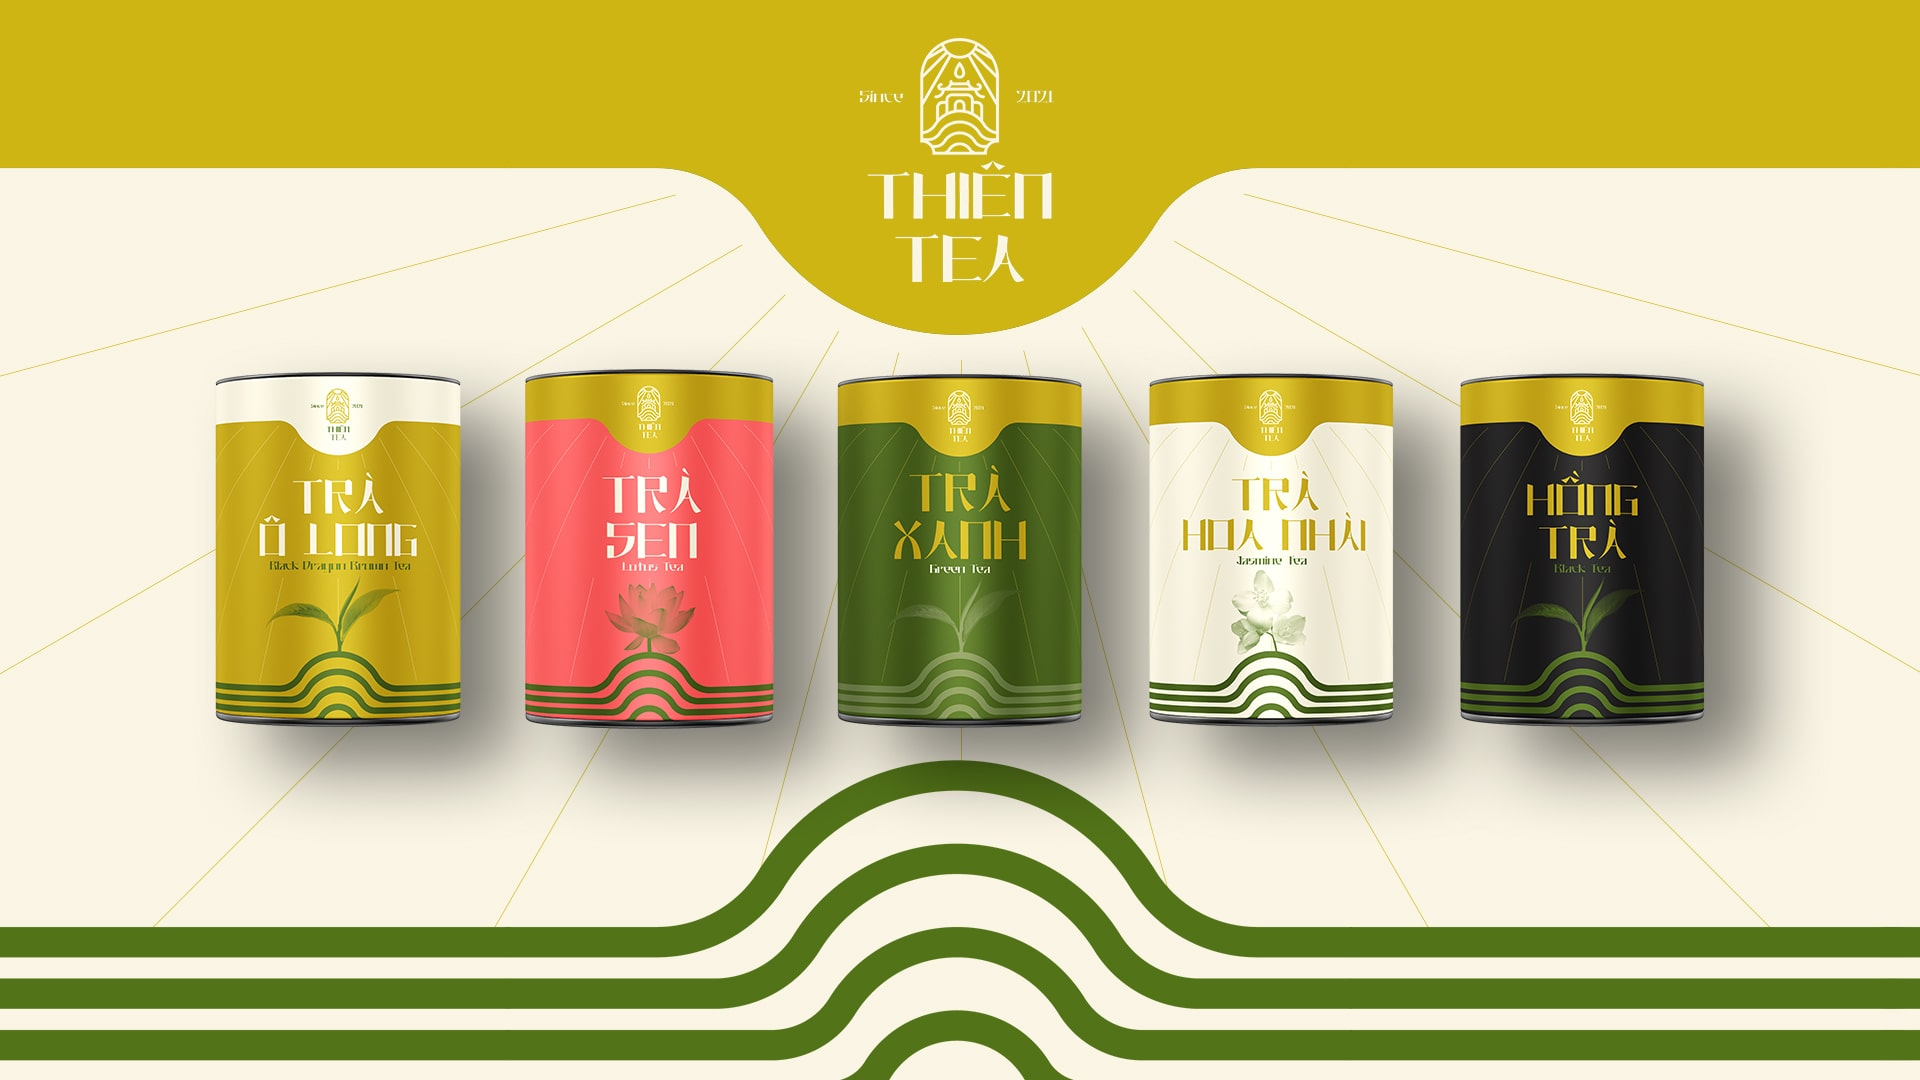 Branding and Packaging For Thien Tea by Khac Duc